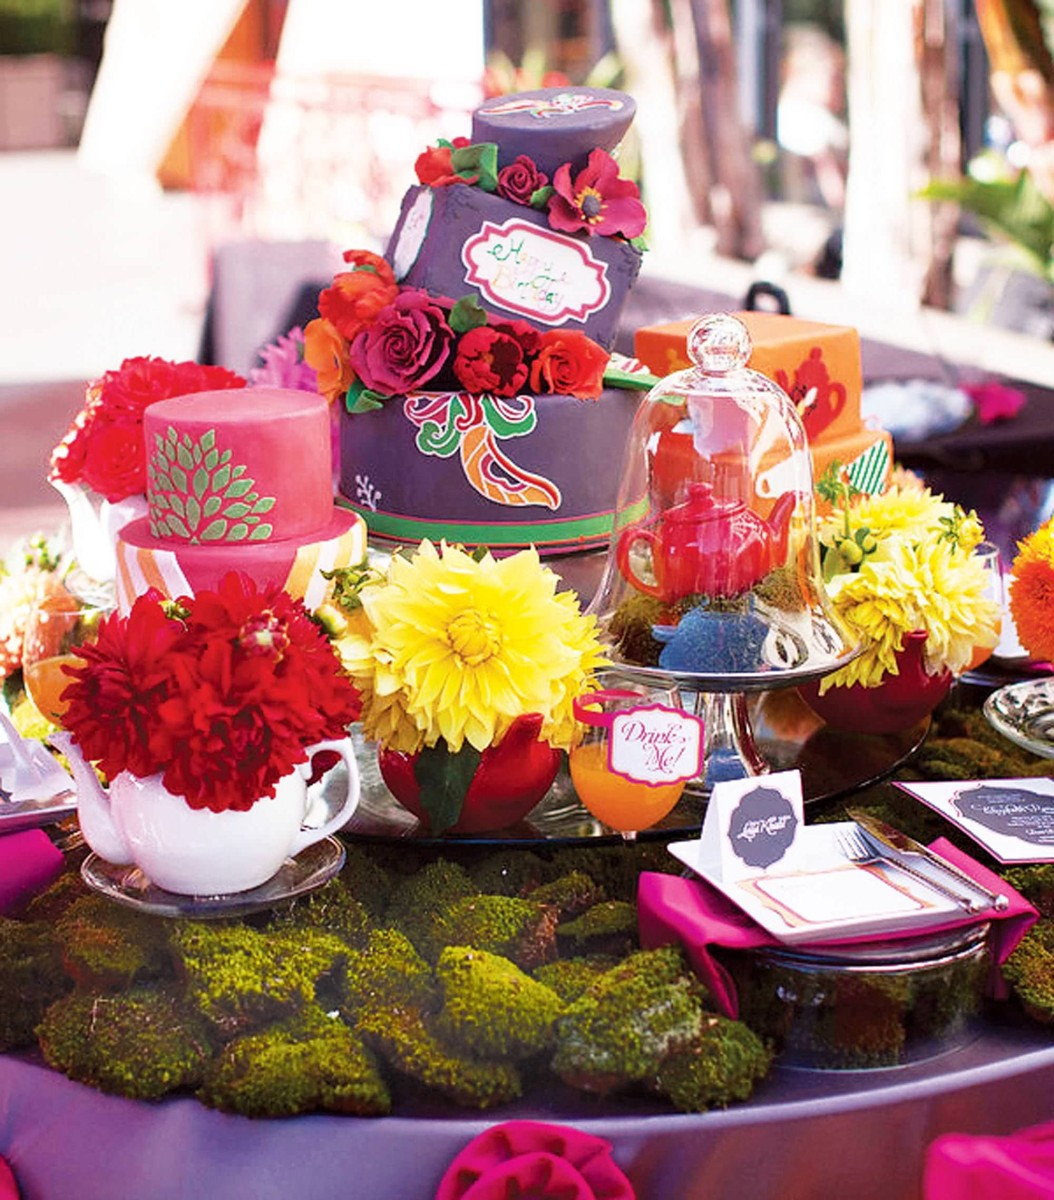 nisies-enchanted-florist-orange-county-Alice-and-Wonderland-event-8